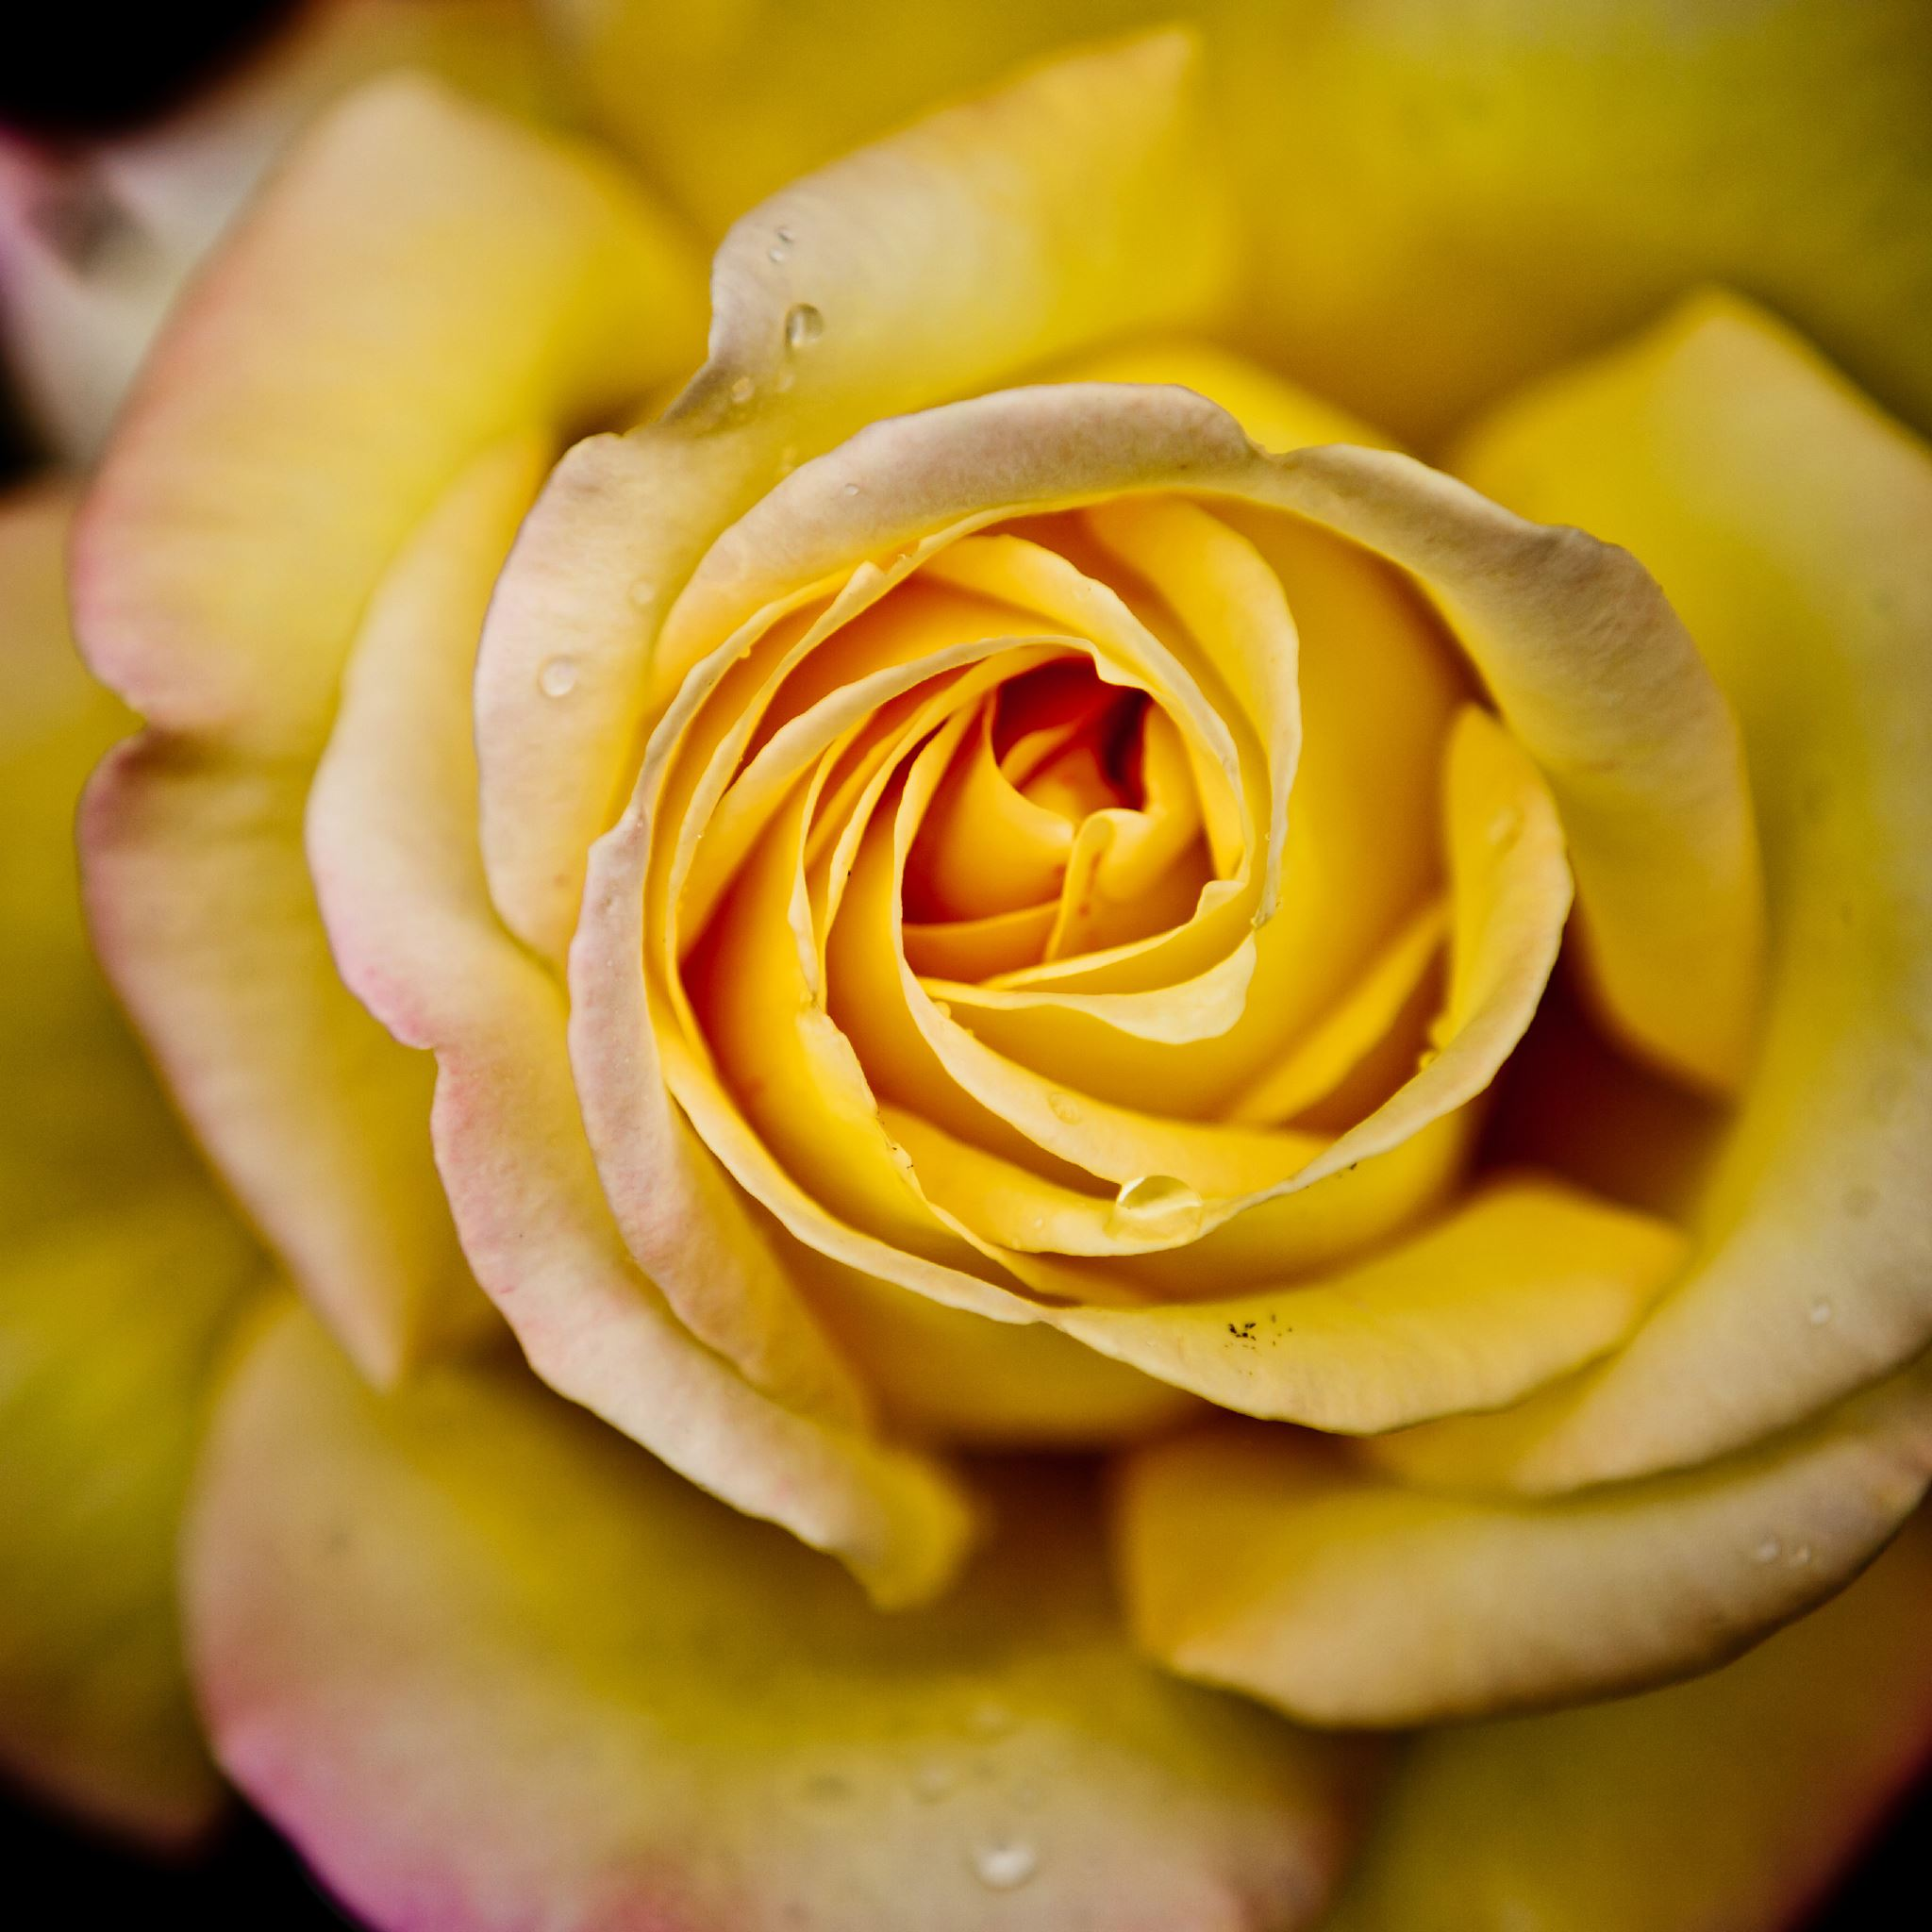 Yellow Rose iPad Air wallpaper